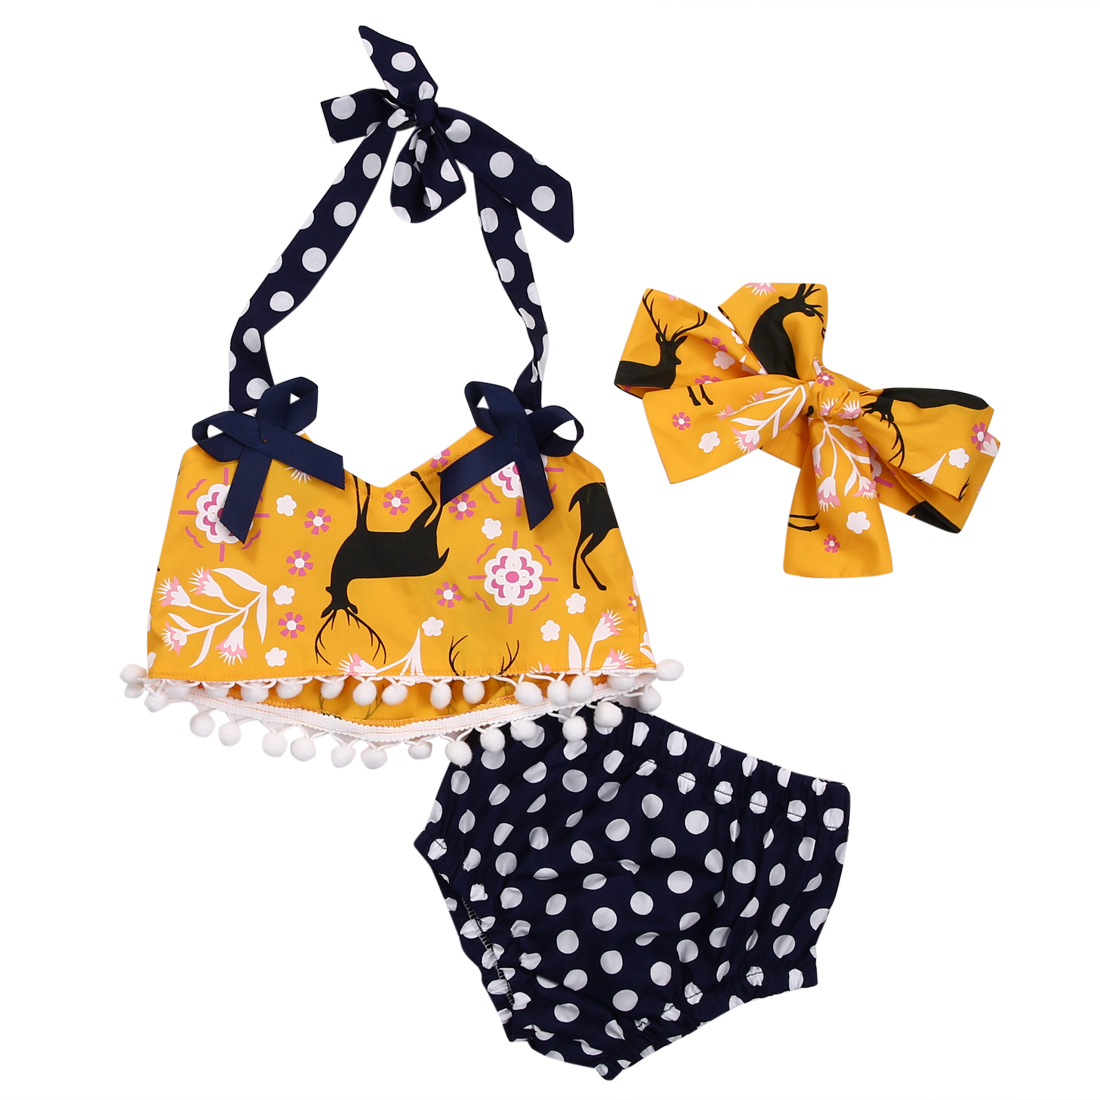 Baby girl clothes Summer Brand kids clothes baby girl ginger color clothing set halter tank top+ dot shorts 2pcs infant clothing